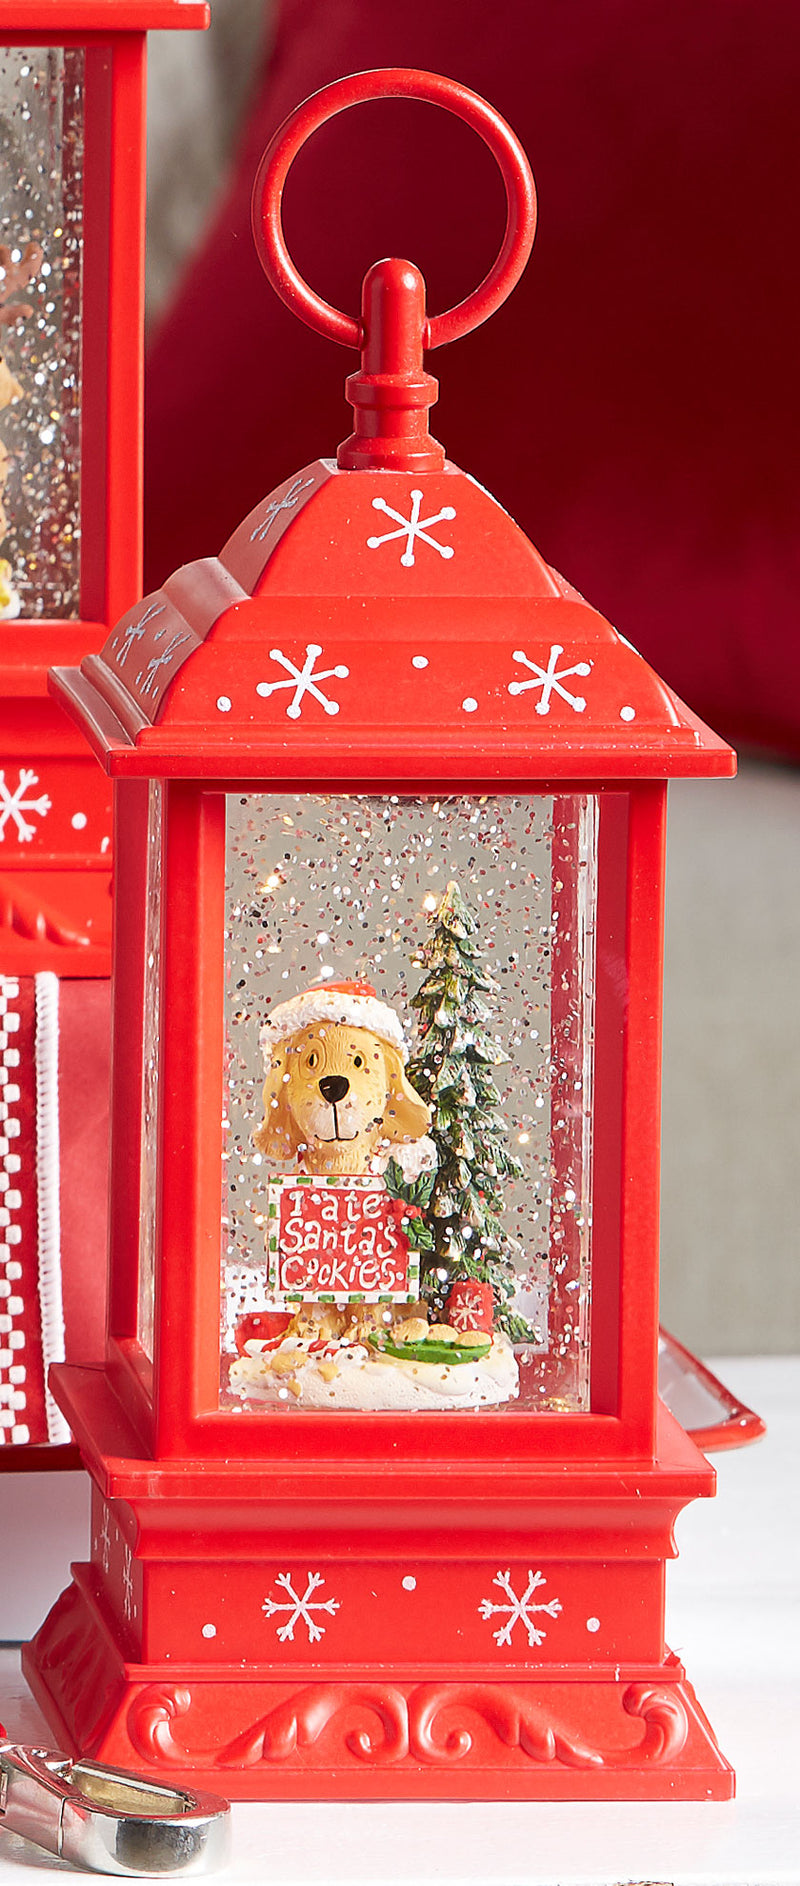 products/3800775-santas-cookies-water-lantern.jpg